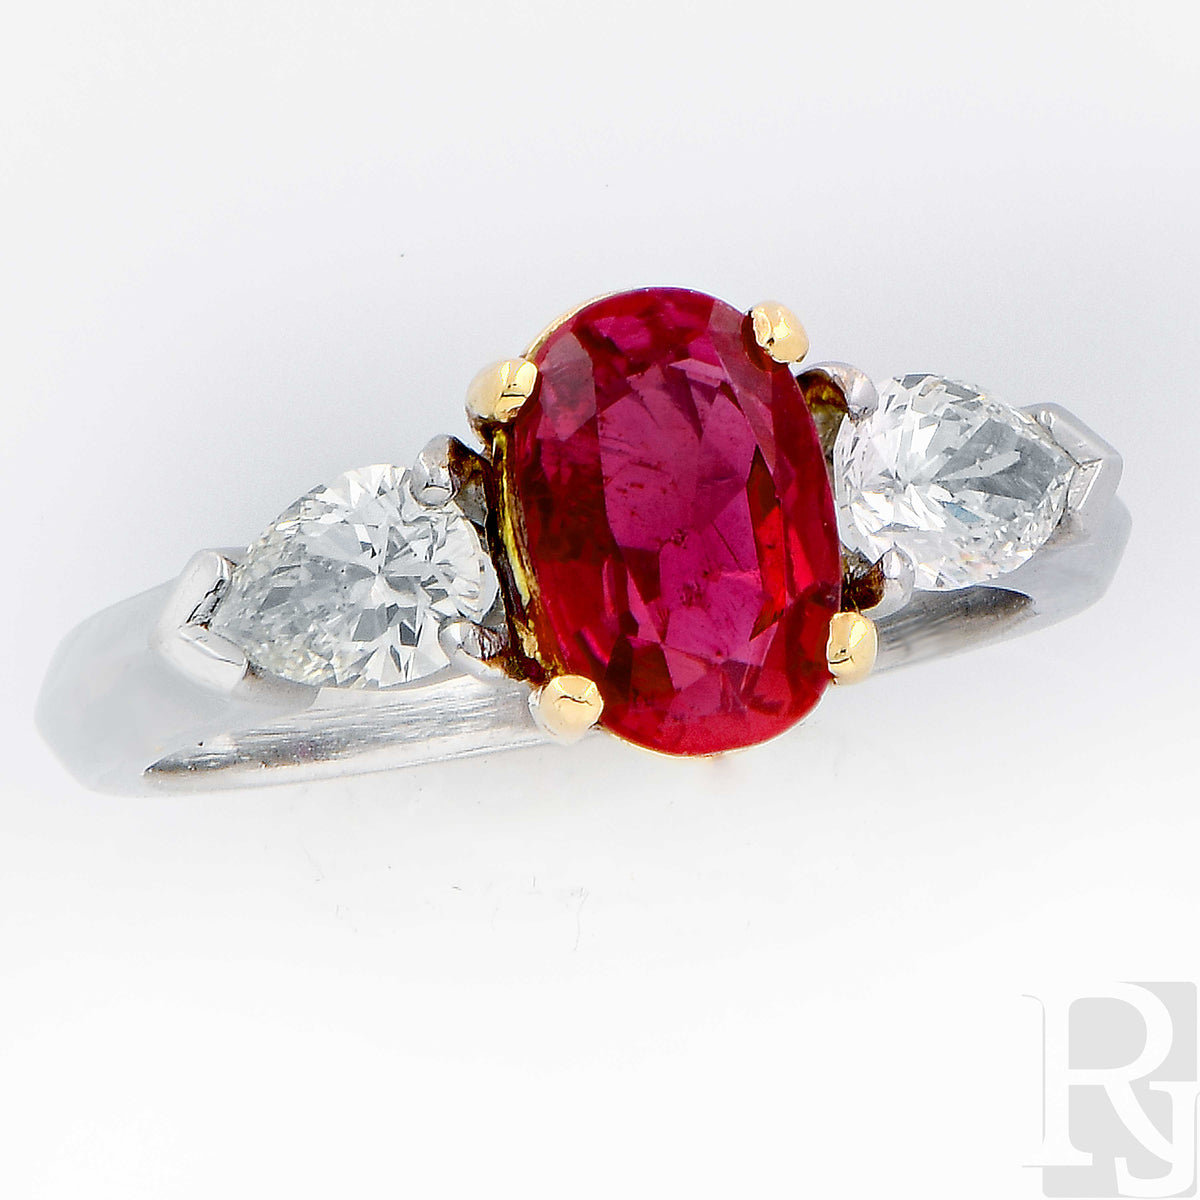 1.24 Carat Burma Ruby and Diamond Platinum Ring